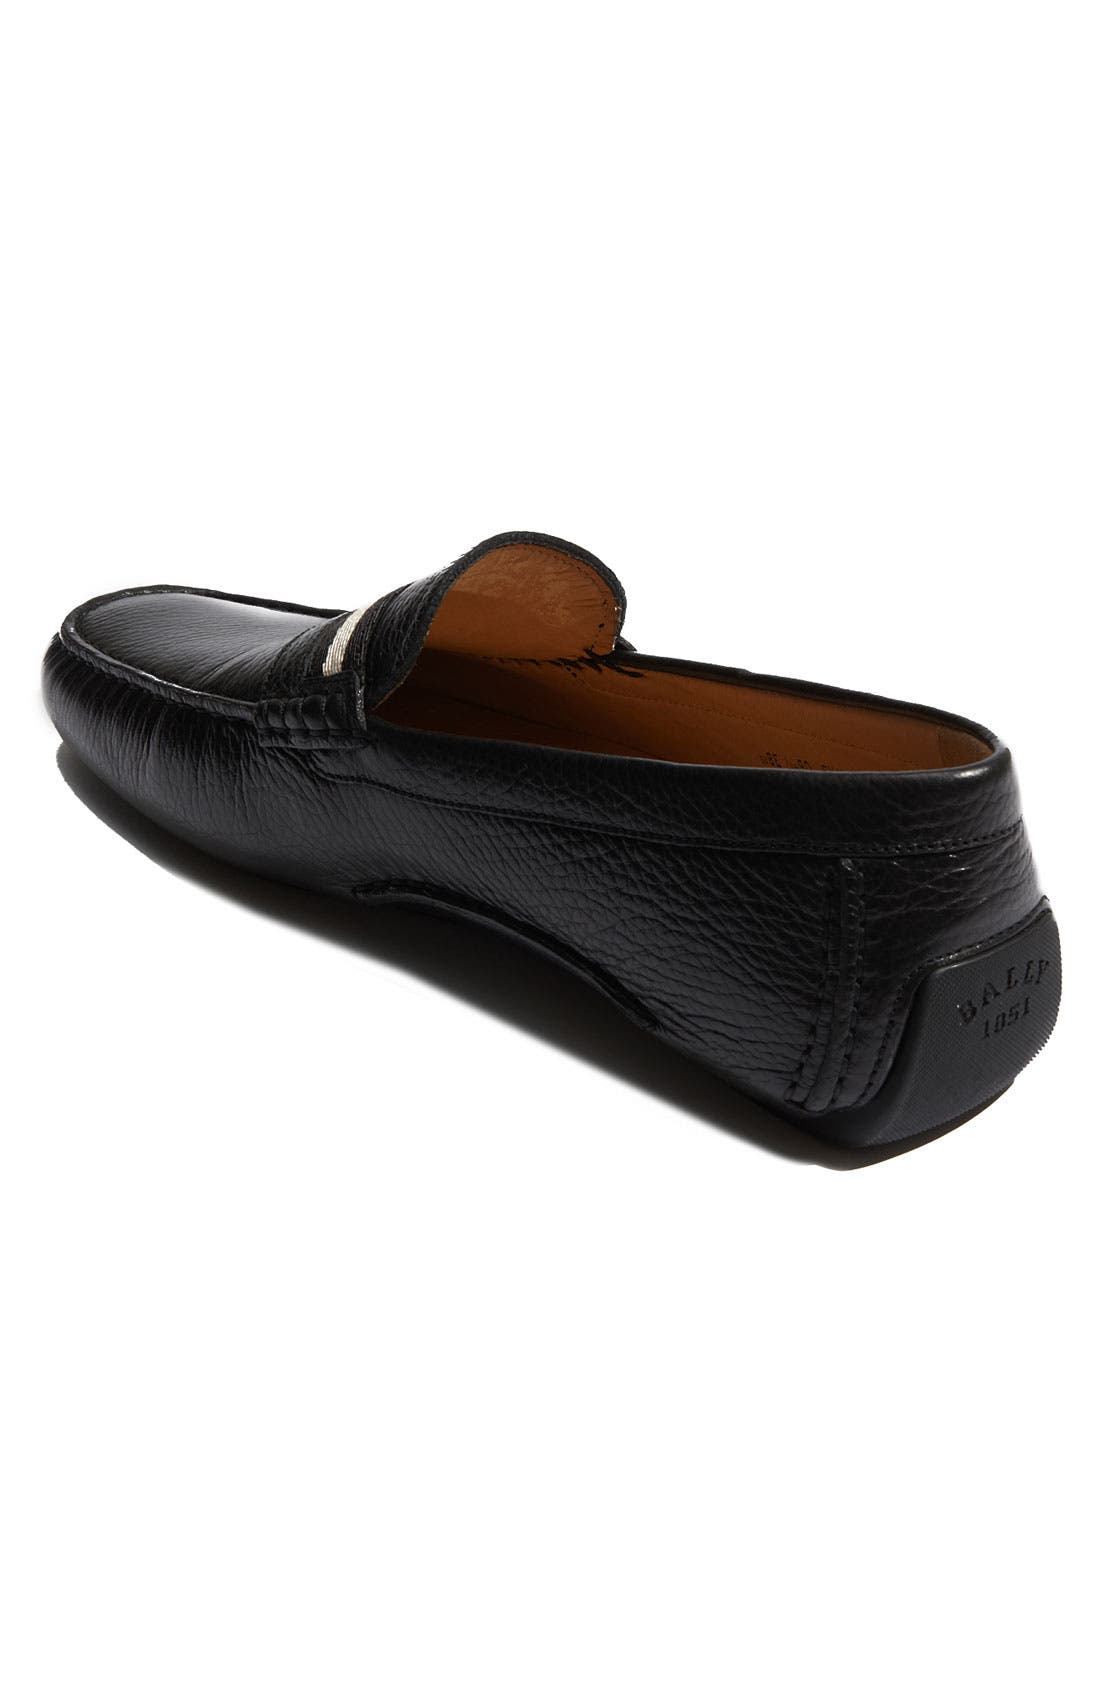 Alternate Image 2  - Bally 'Wabler' Loafer (Men)